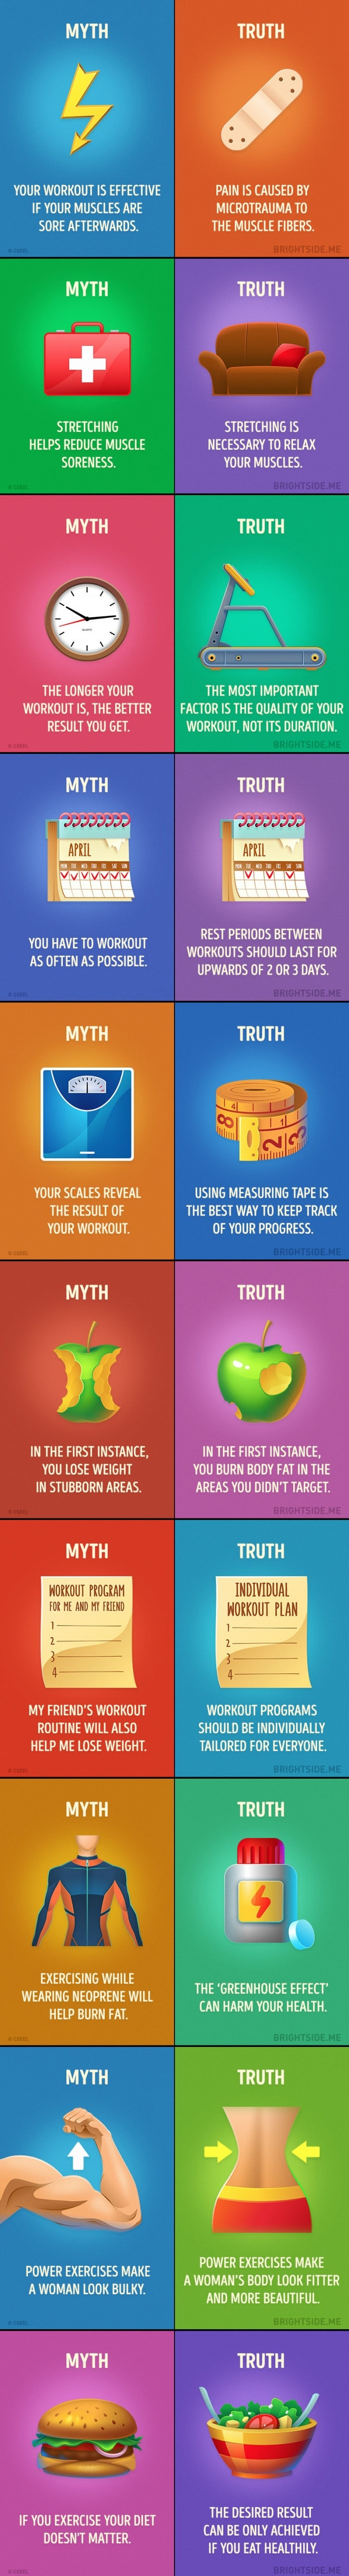 Fitness myths you need to stop believing